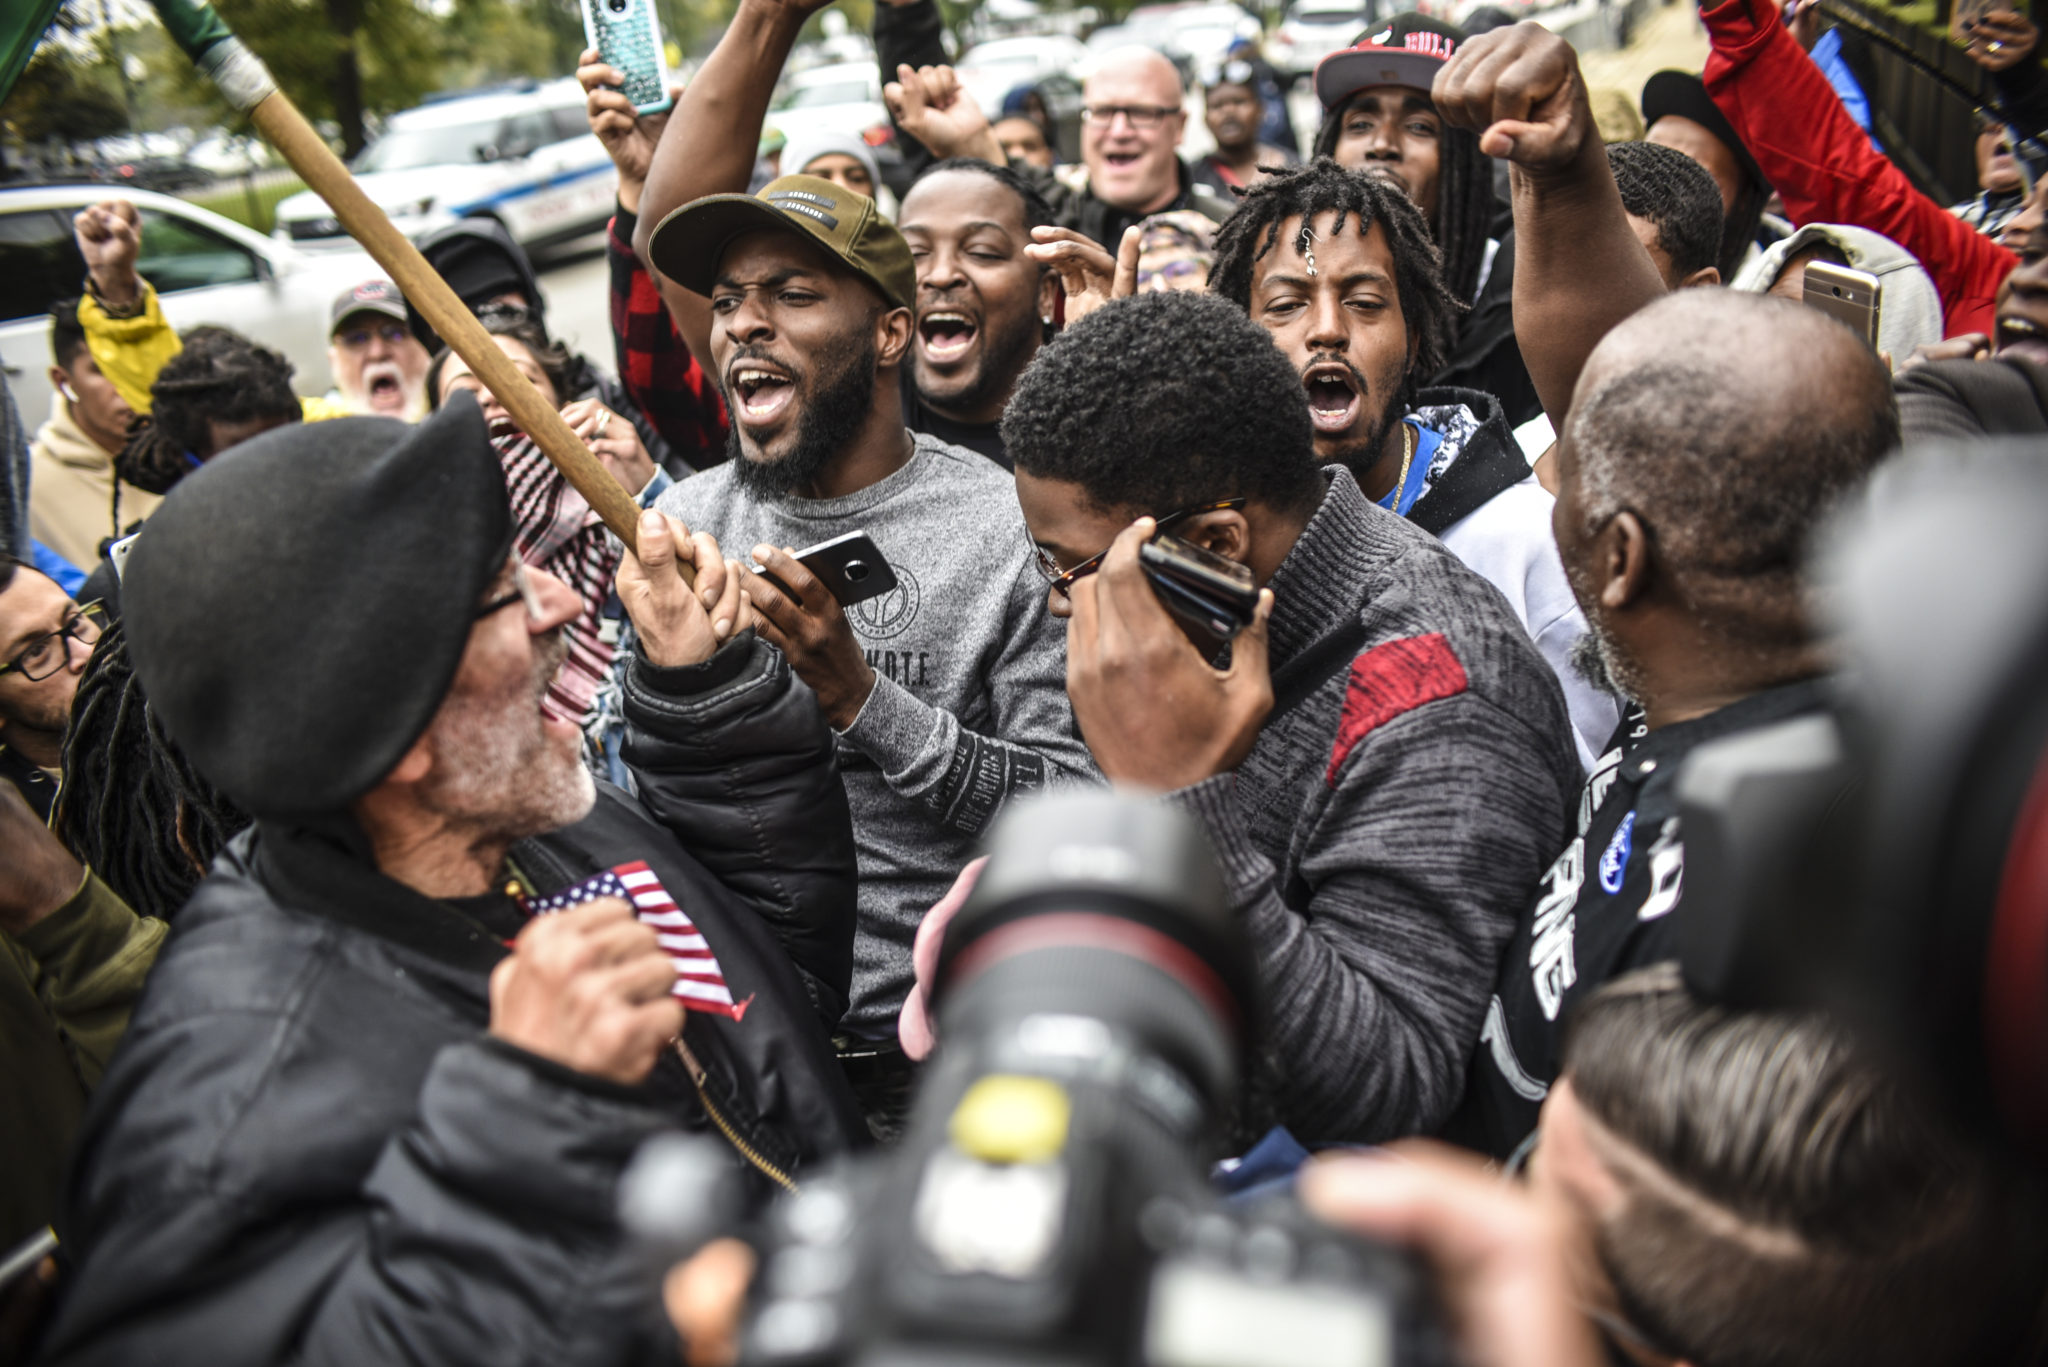 The scene outside the Criminal Court building after the Van Dyke verdict on Oct. 5, 2018